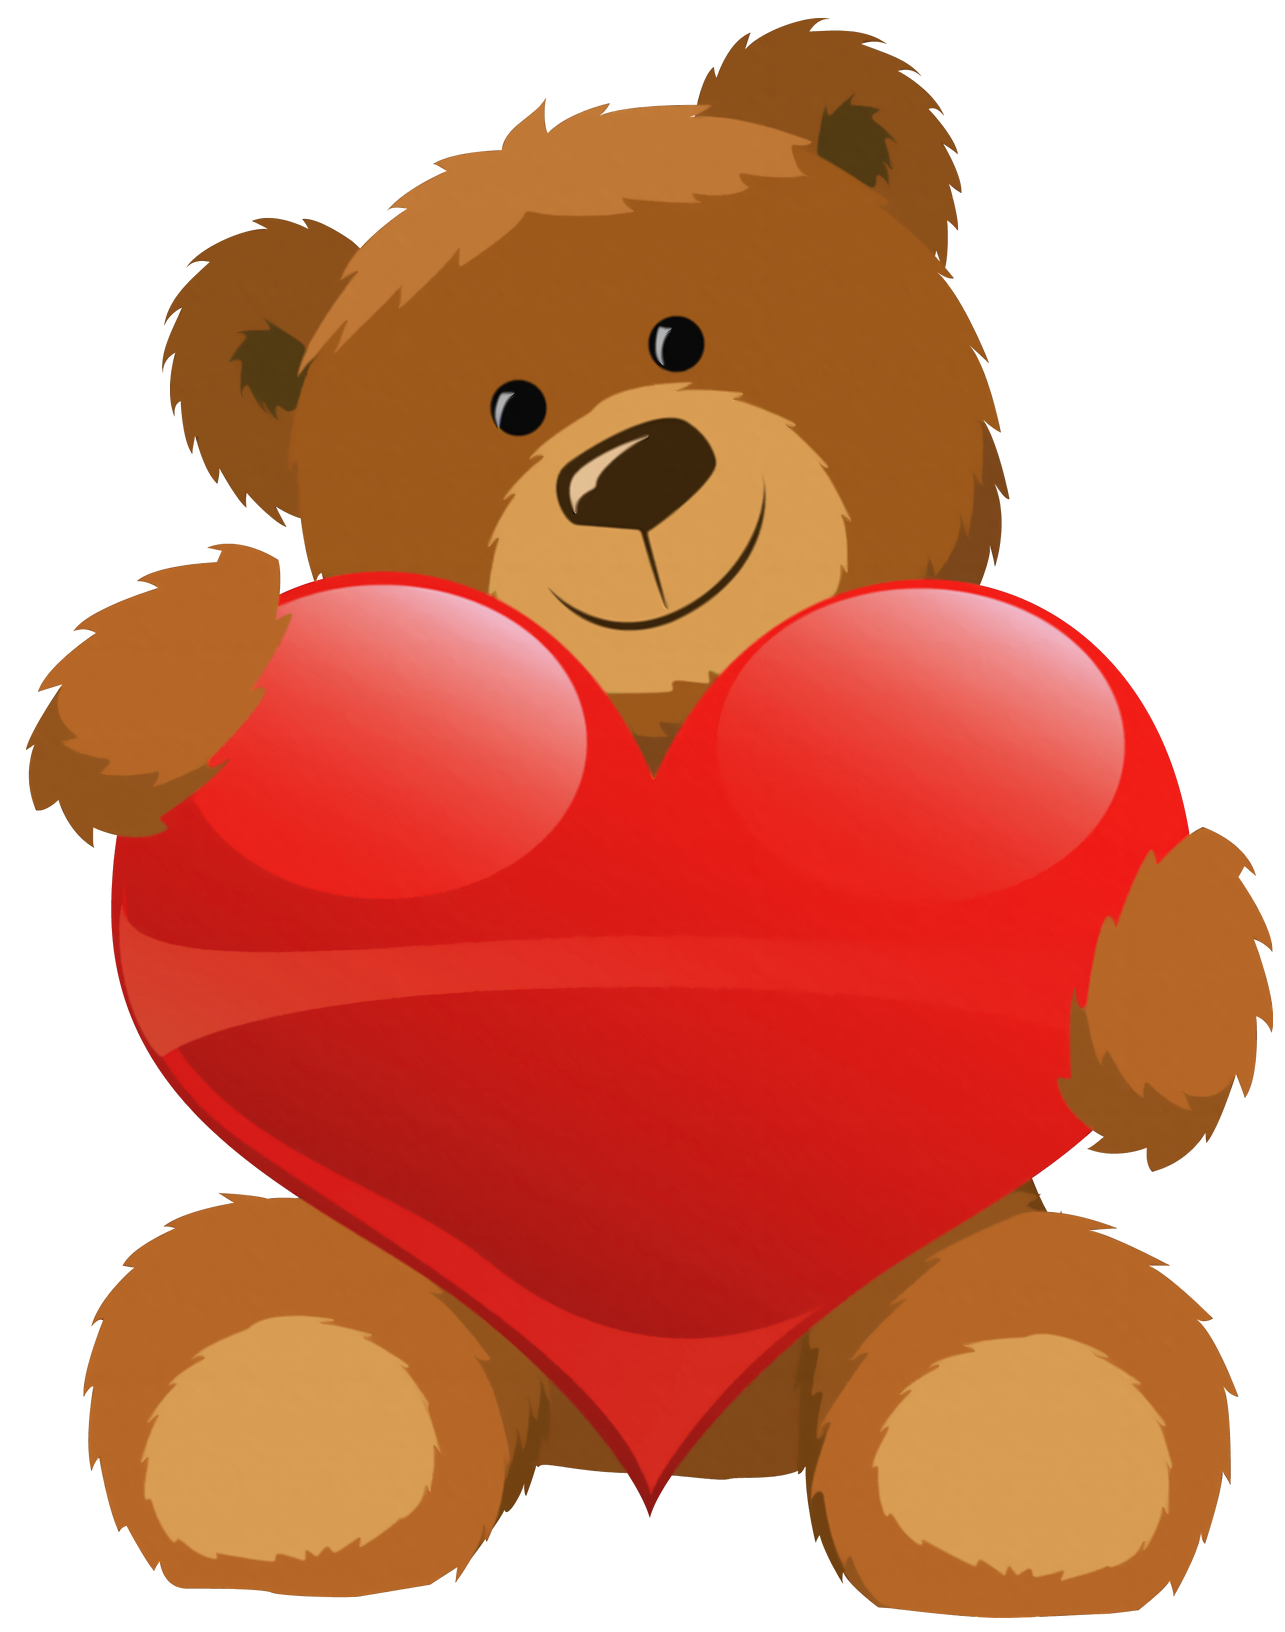 clipart royalty free stock Cute bear clipart. Cliparts choose your favorite